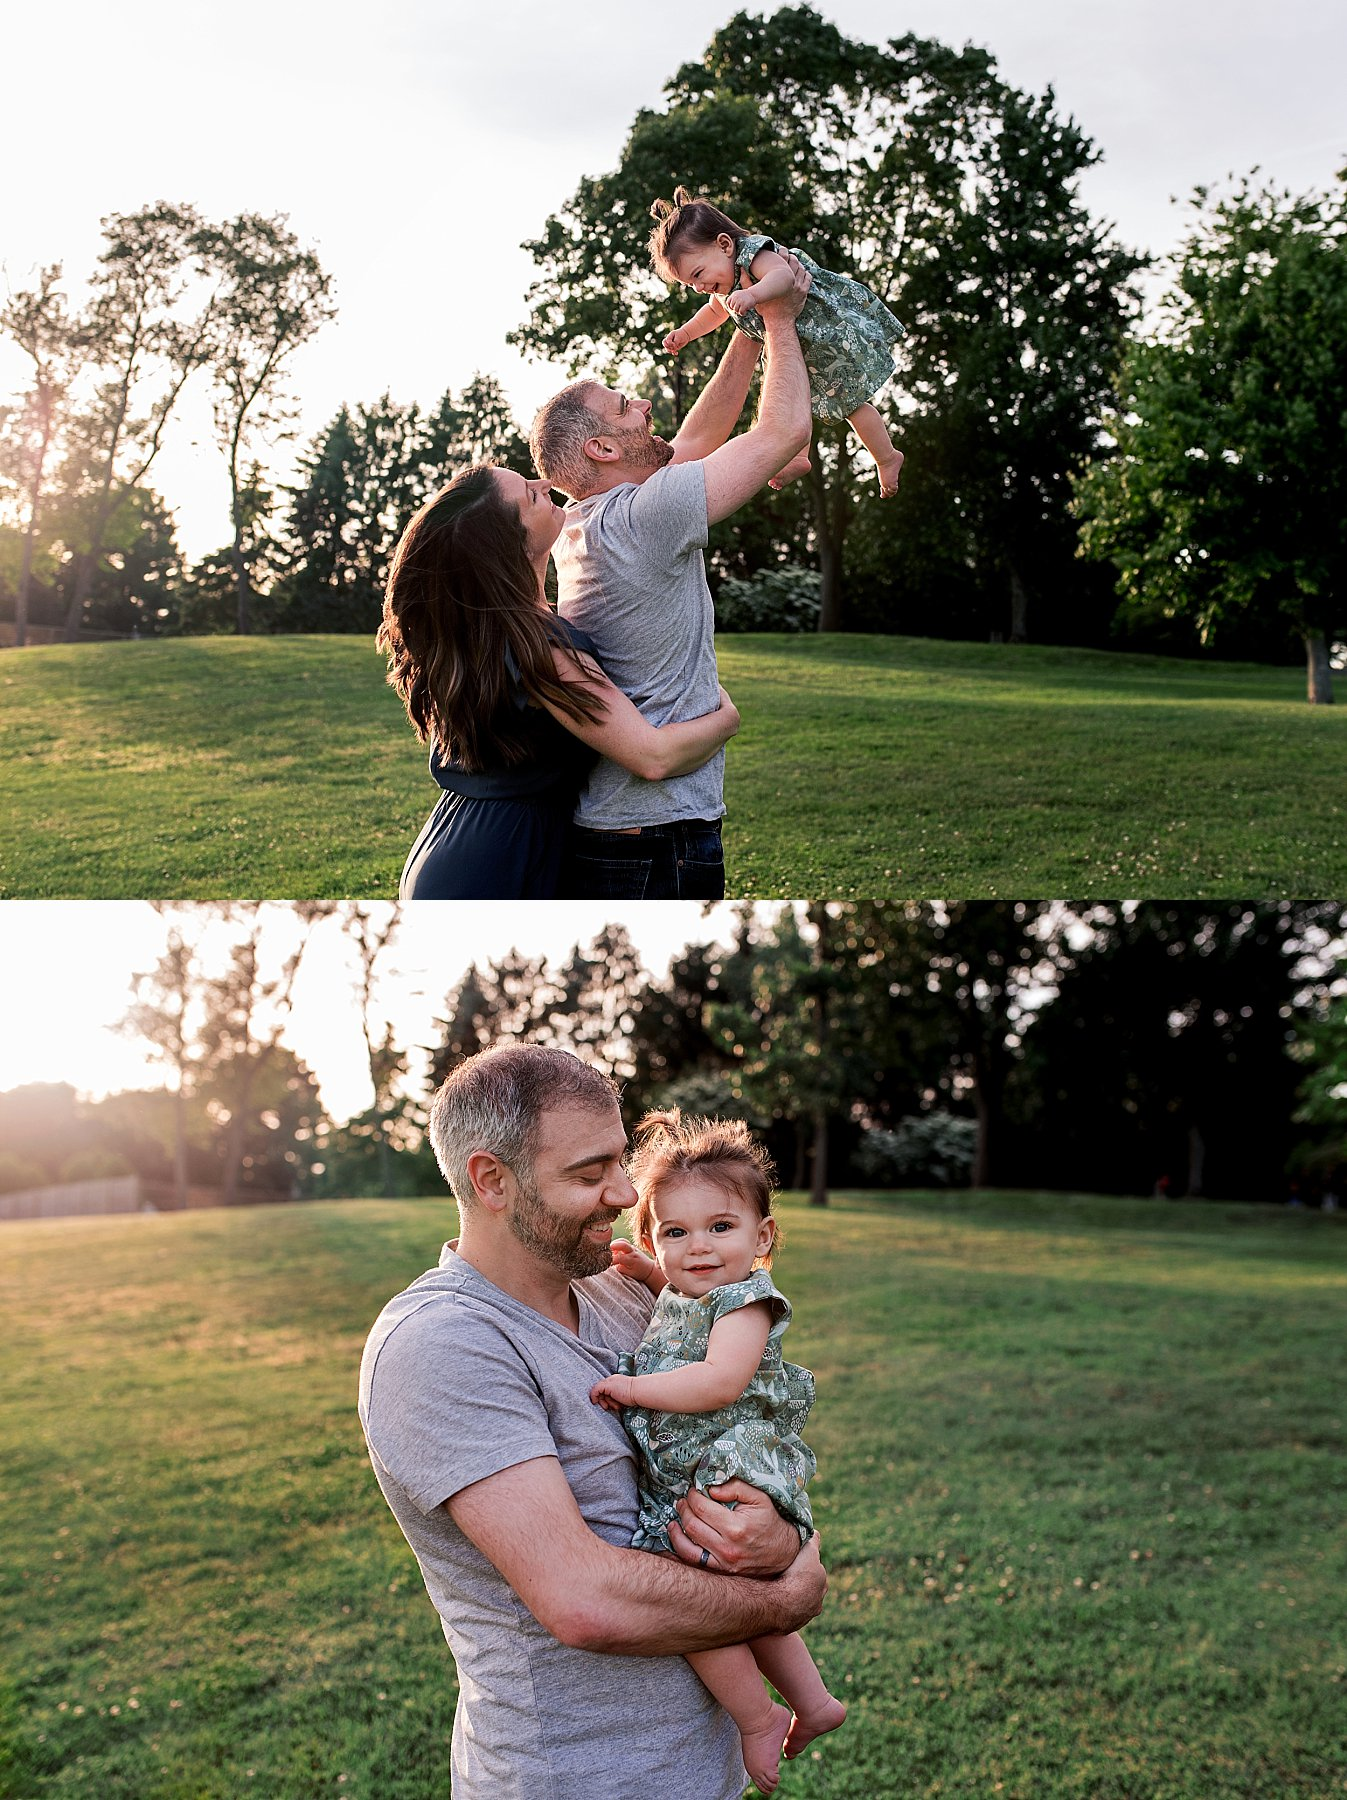 family photography at the park at sunset in connecticut